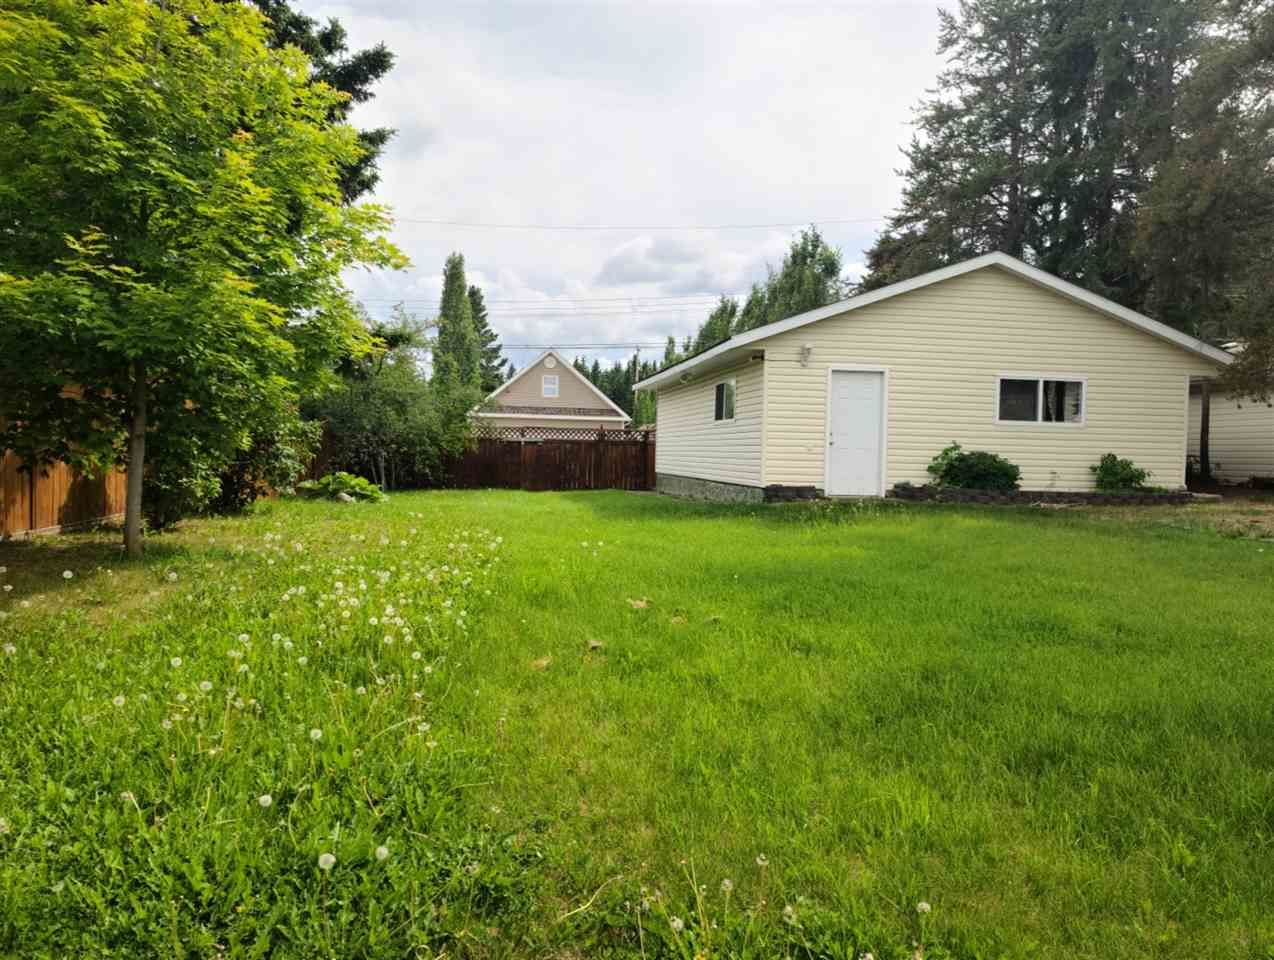 Main Photo: 6107 51 Avenue: Cold Lake Vacant Lot for sale : MLS®# E4203833